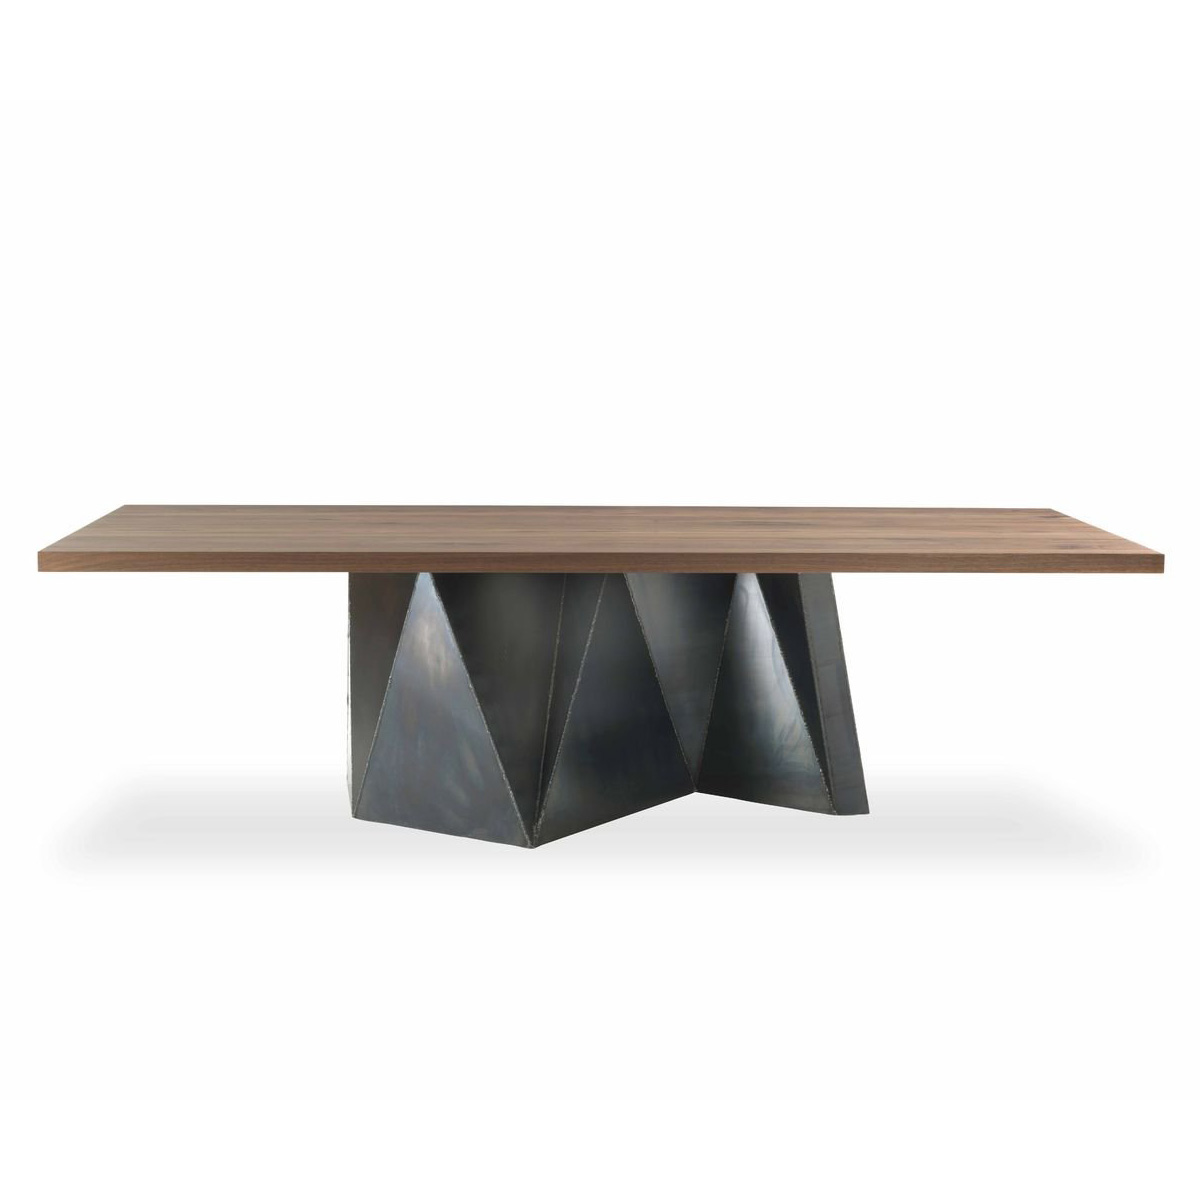 Ooki dining table from Riva 1920